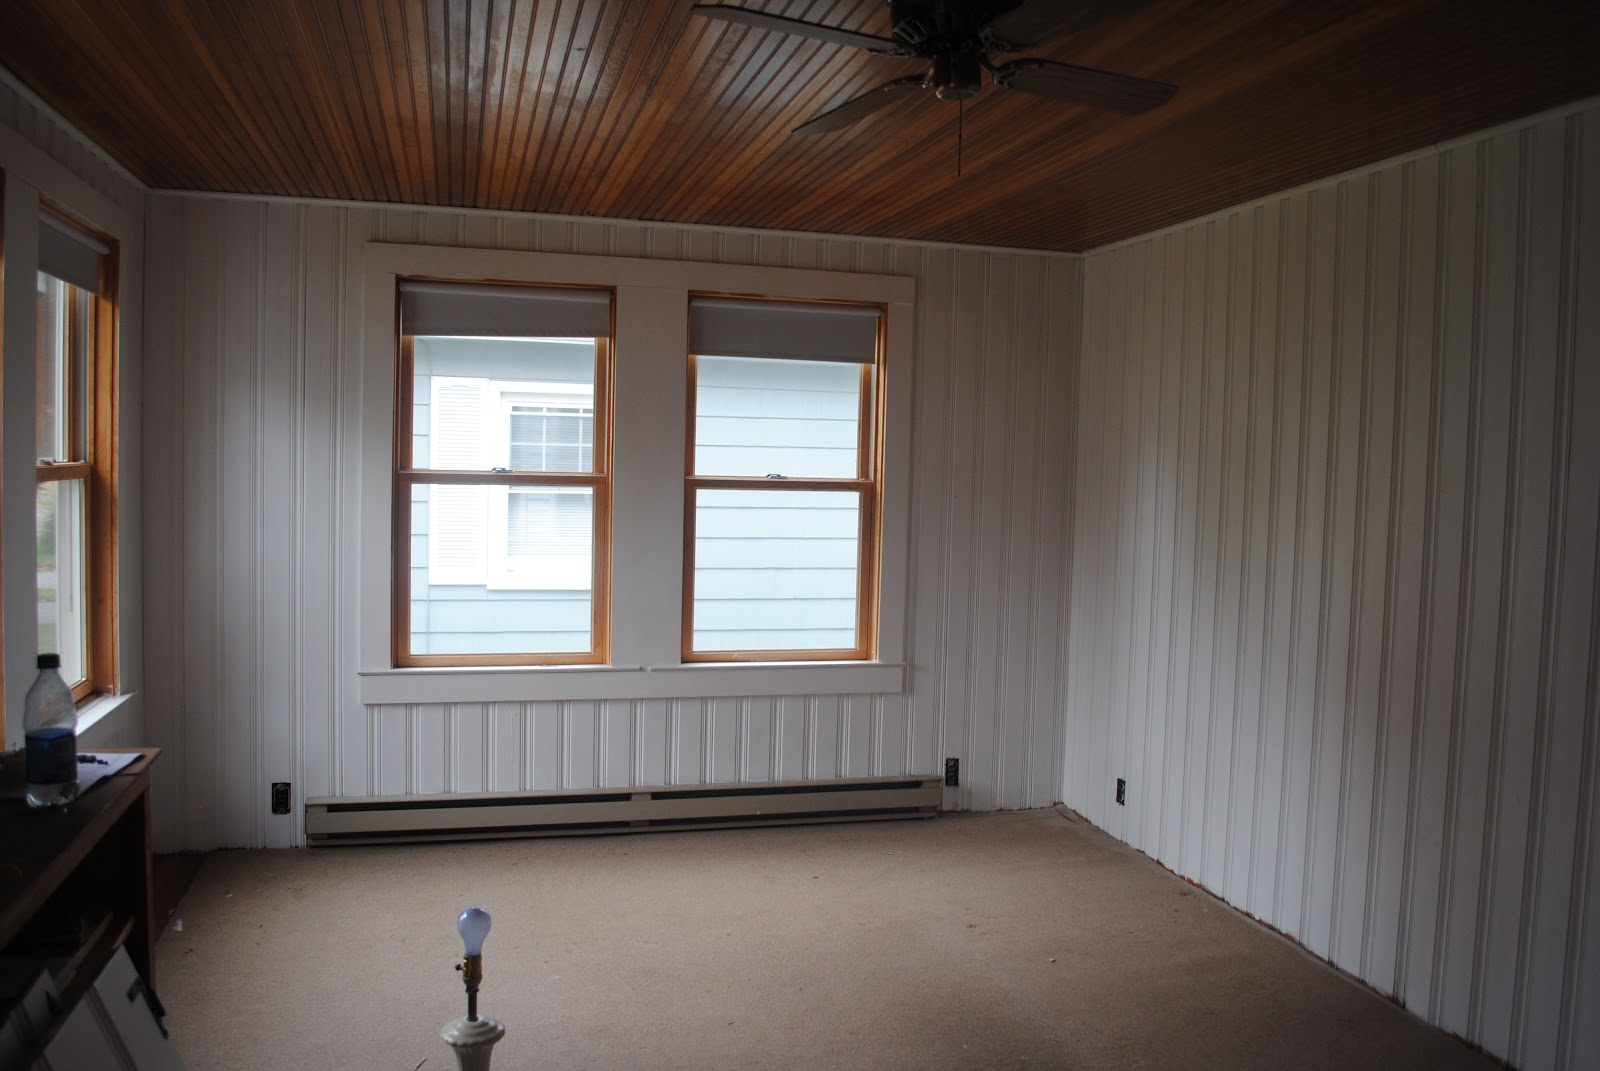 House by holly to paint knotty pine or not paint knotty How to cover old wood paneling